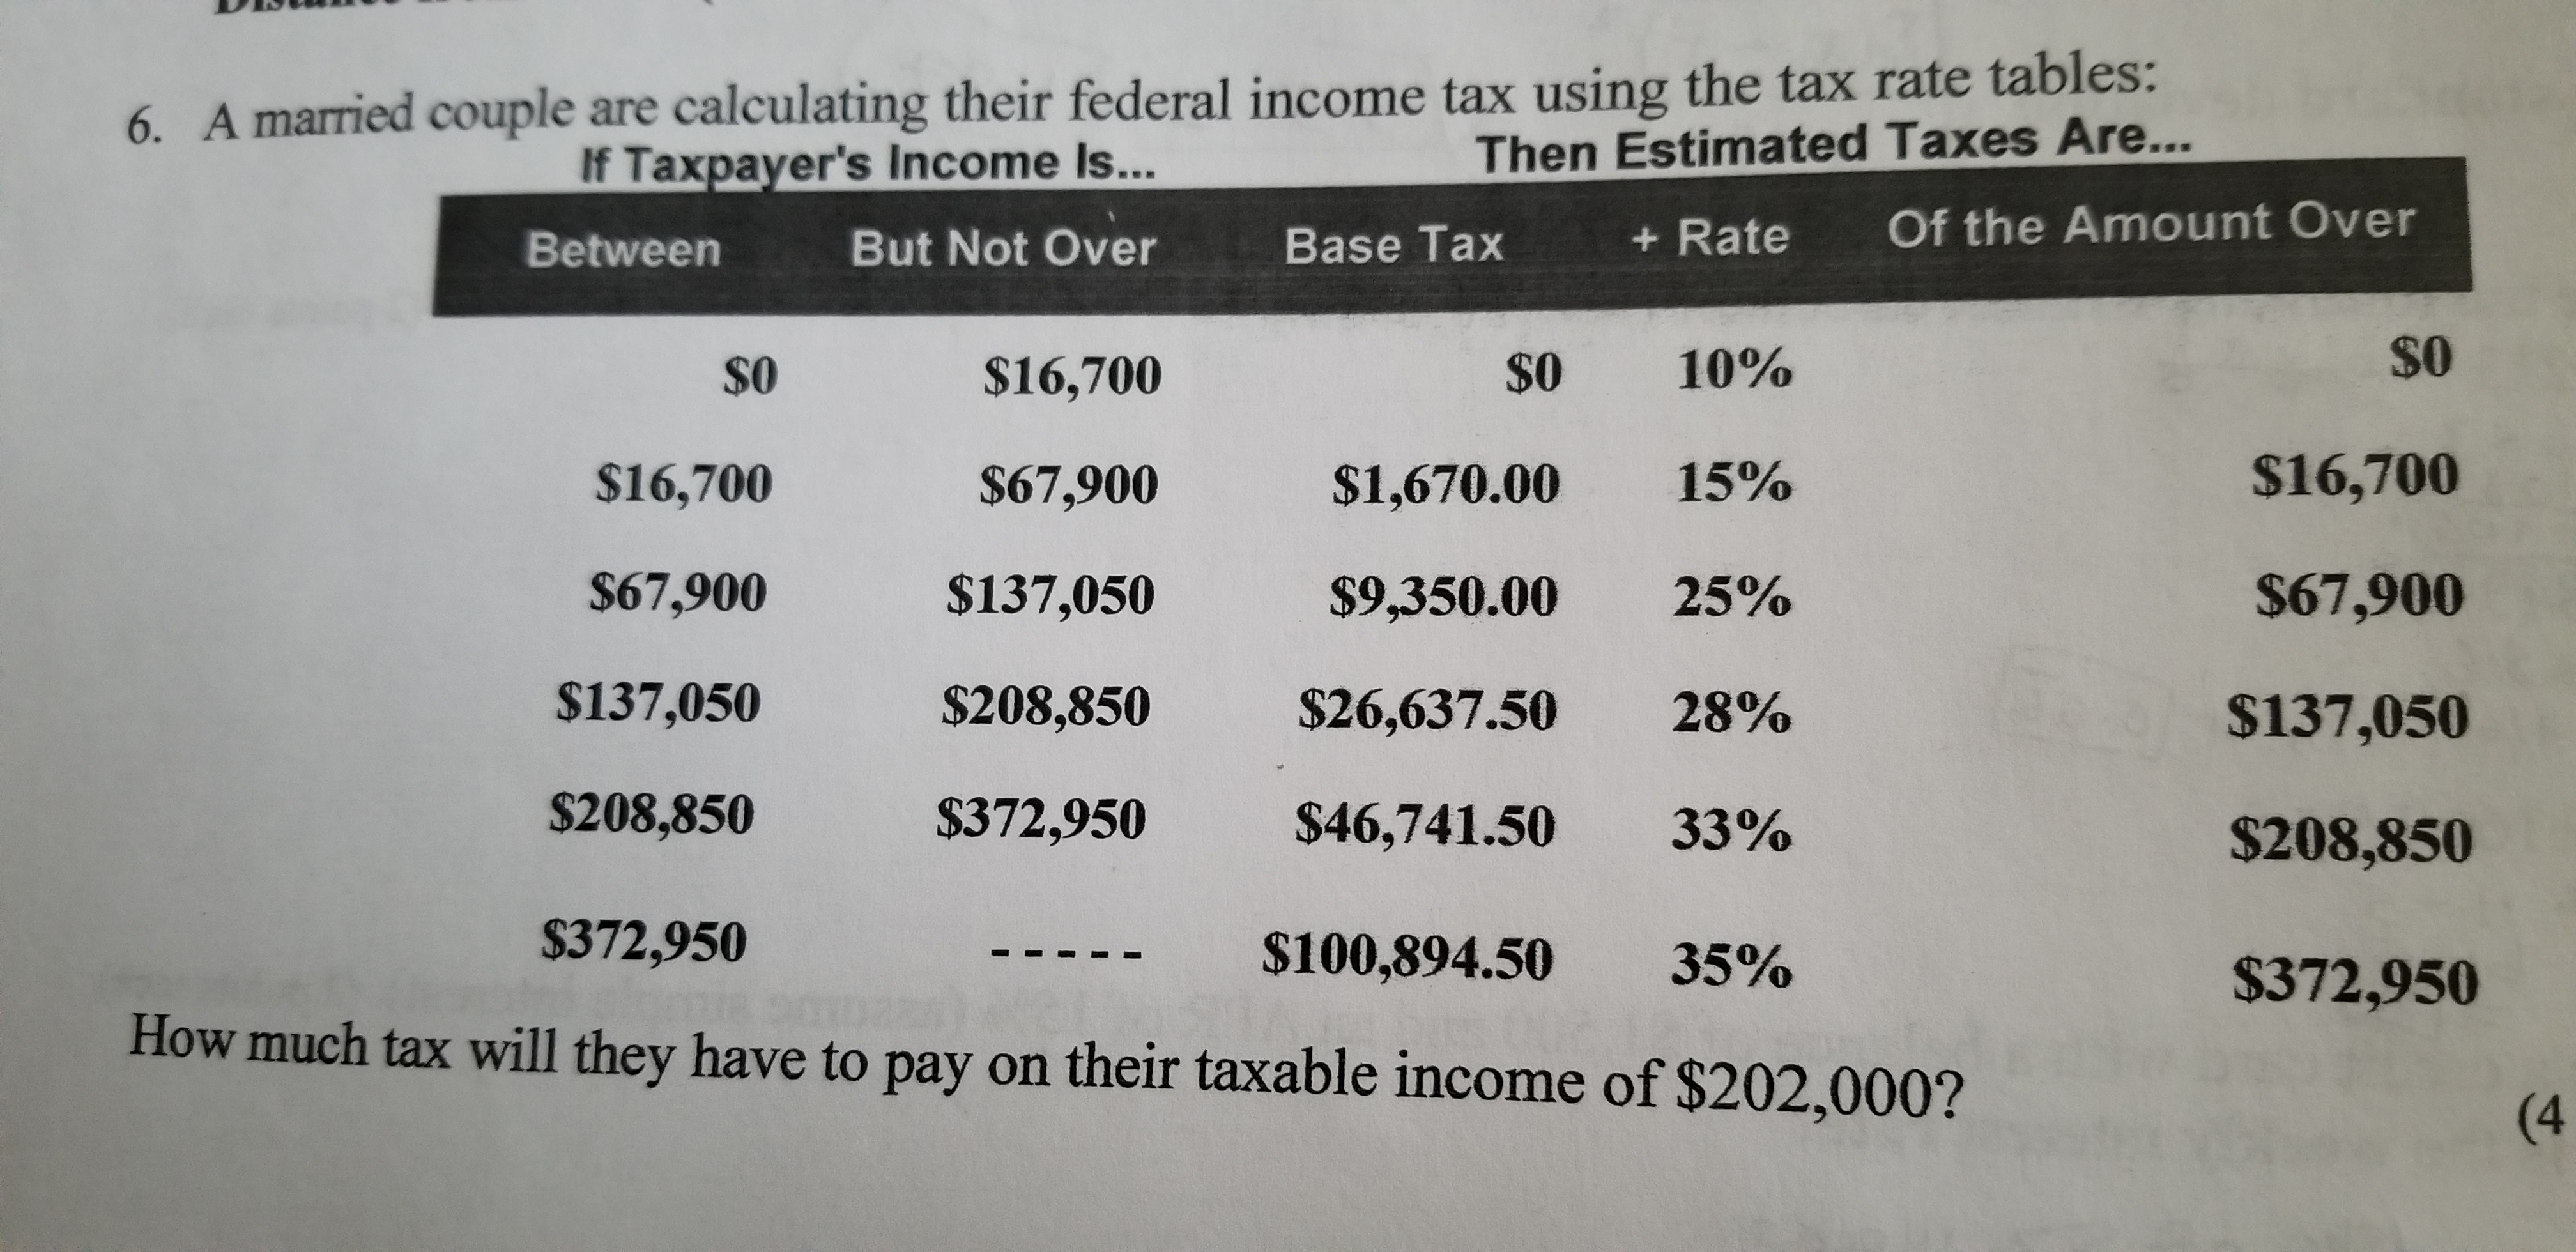 6. A married couple are calculating their federal income tax using the tax rate tables: Then Estimated Taxes Are If Taxpayer's Income Is Between So $16,700 $67,900 $137,050 $208,850 $372,950 But Not Over $16,700 $67,900 $137,050 $208,850 $372,950 Base TaxRate $0 10% $1,670.00 15% $9,350.00 25% $26,637.50 28% $46,741.50 33% $100,894.50 35% S0 $16,700 $67,900 $137,050 $208,850 $372,950 How much tax will they have to pay on their taxable income of $202,000? (4